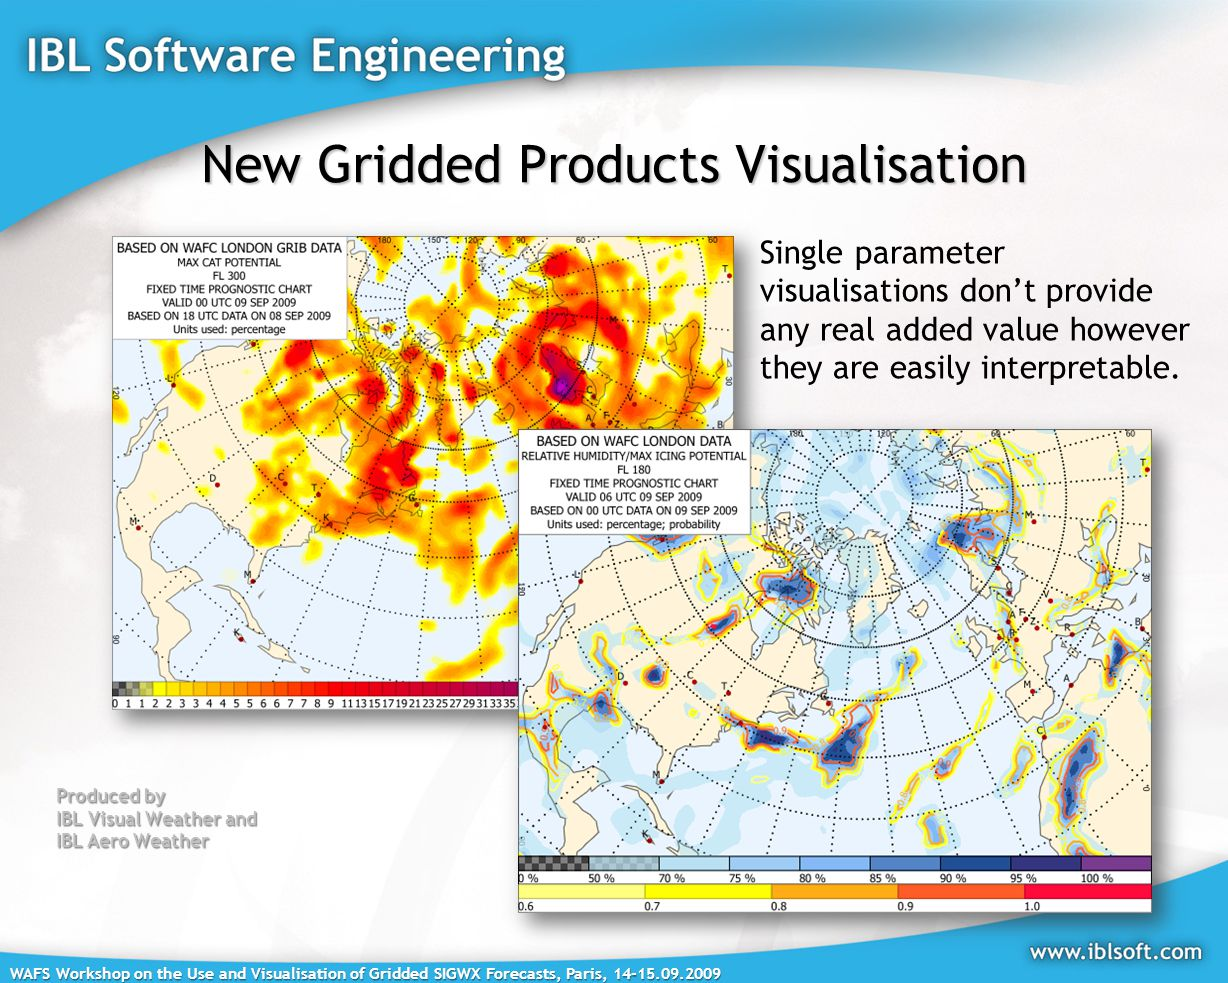 WAFS Workshop on the Use and Visualisation of Gridded SIGWX Forecasts, Paris, New Gridded Products Visualisation Produced by IBL Visual Weather and IBL Aero Weather Single parameter visualisations don't provide any real added value however they are easily interpretable.